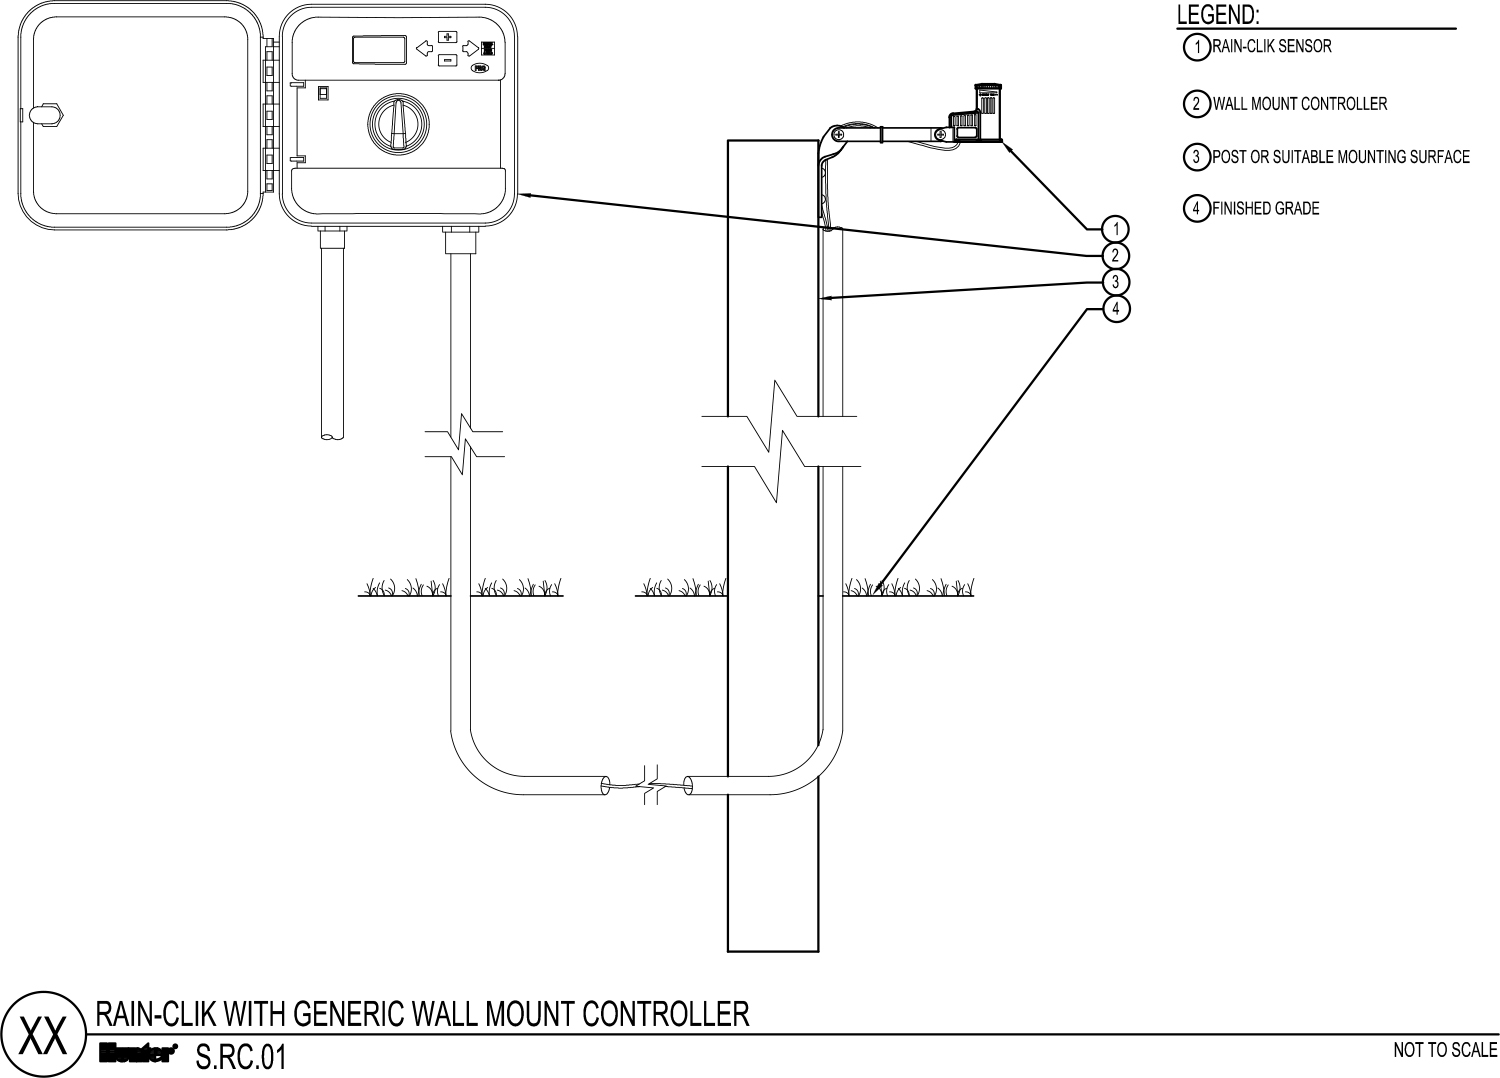 CAD - Rain-Clik with Generic Wall Mount Controller